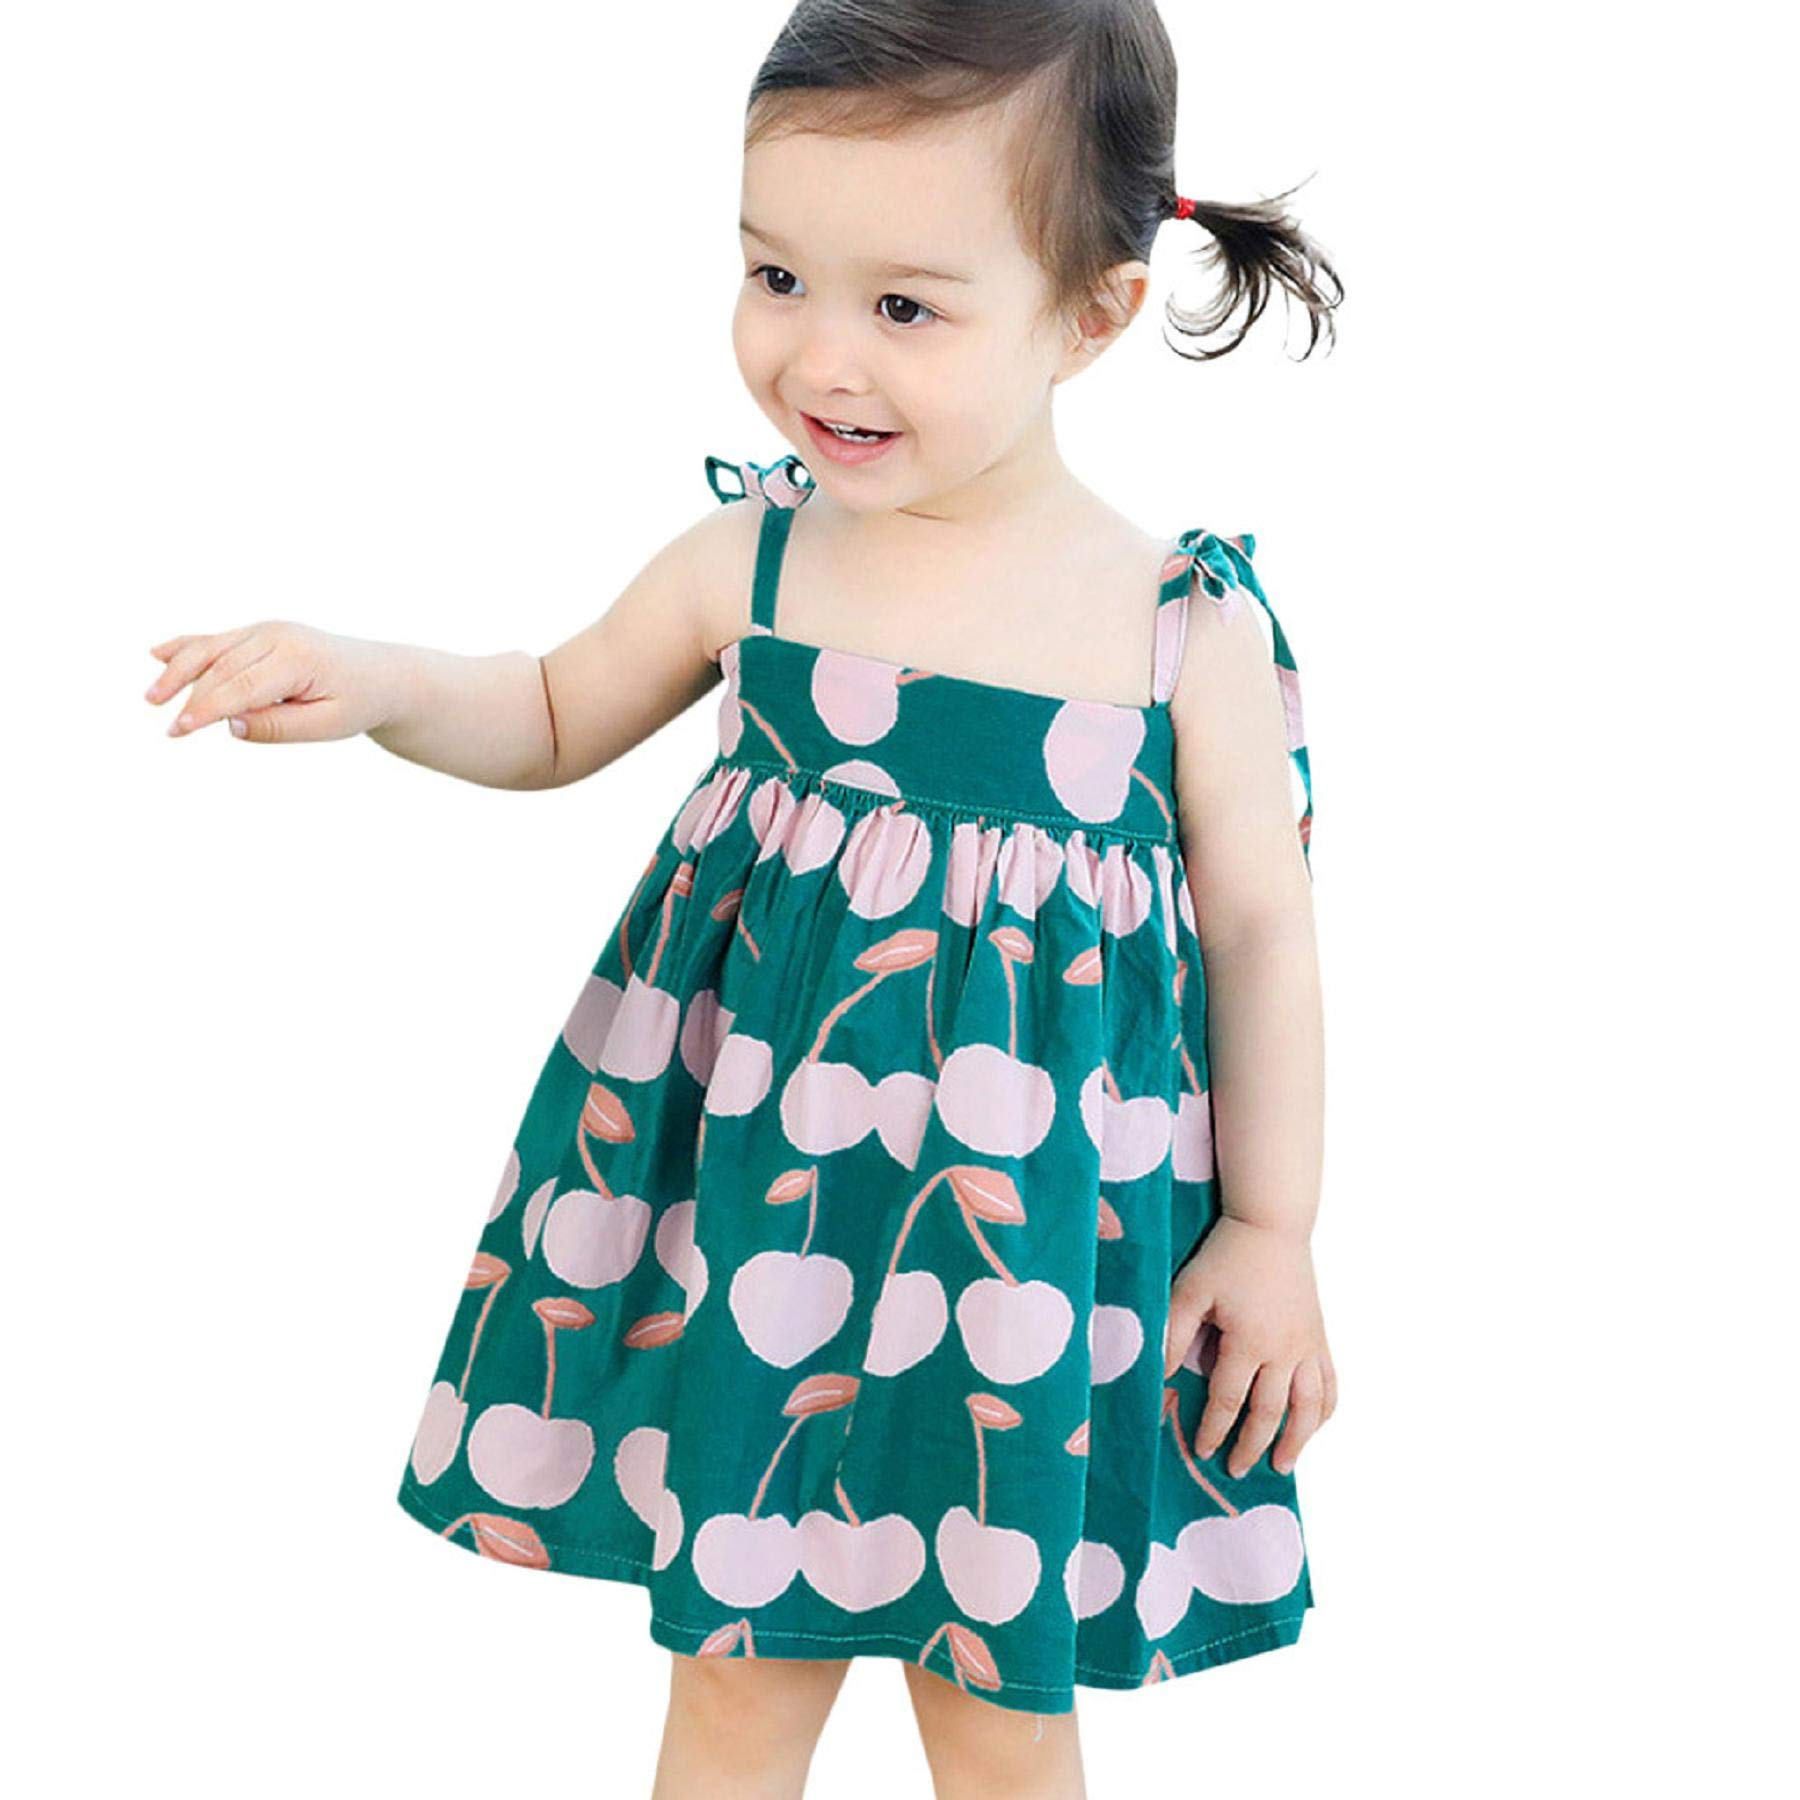 Zainafacai Baby Clothes Set, Baby Infant Girl Kids Sleeveless Printed Straps Princess Dress Clothes Green